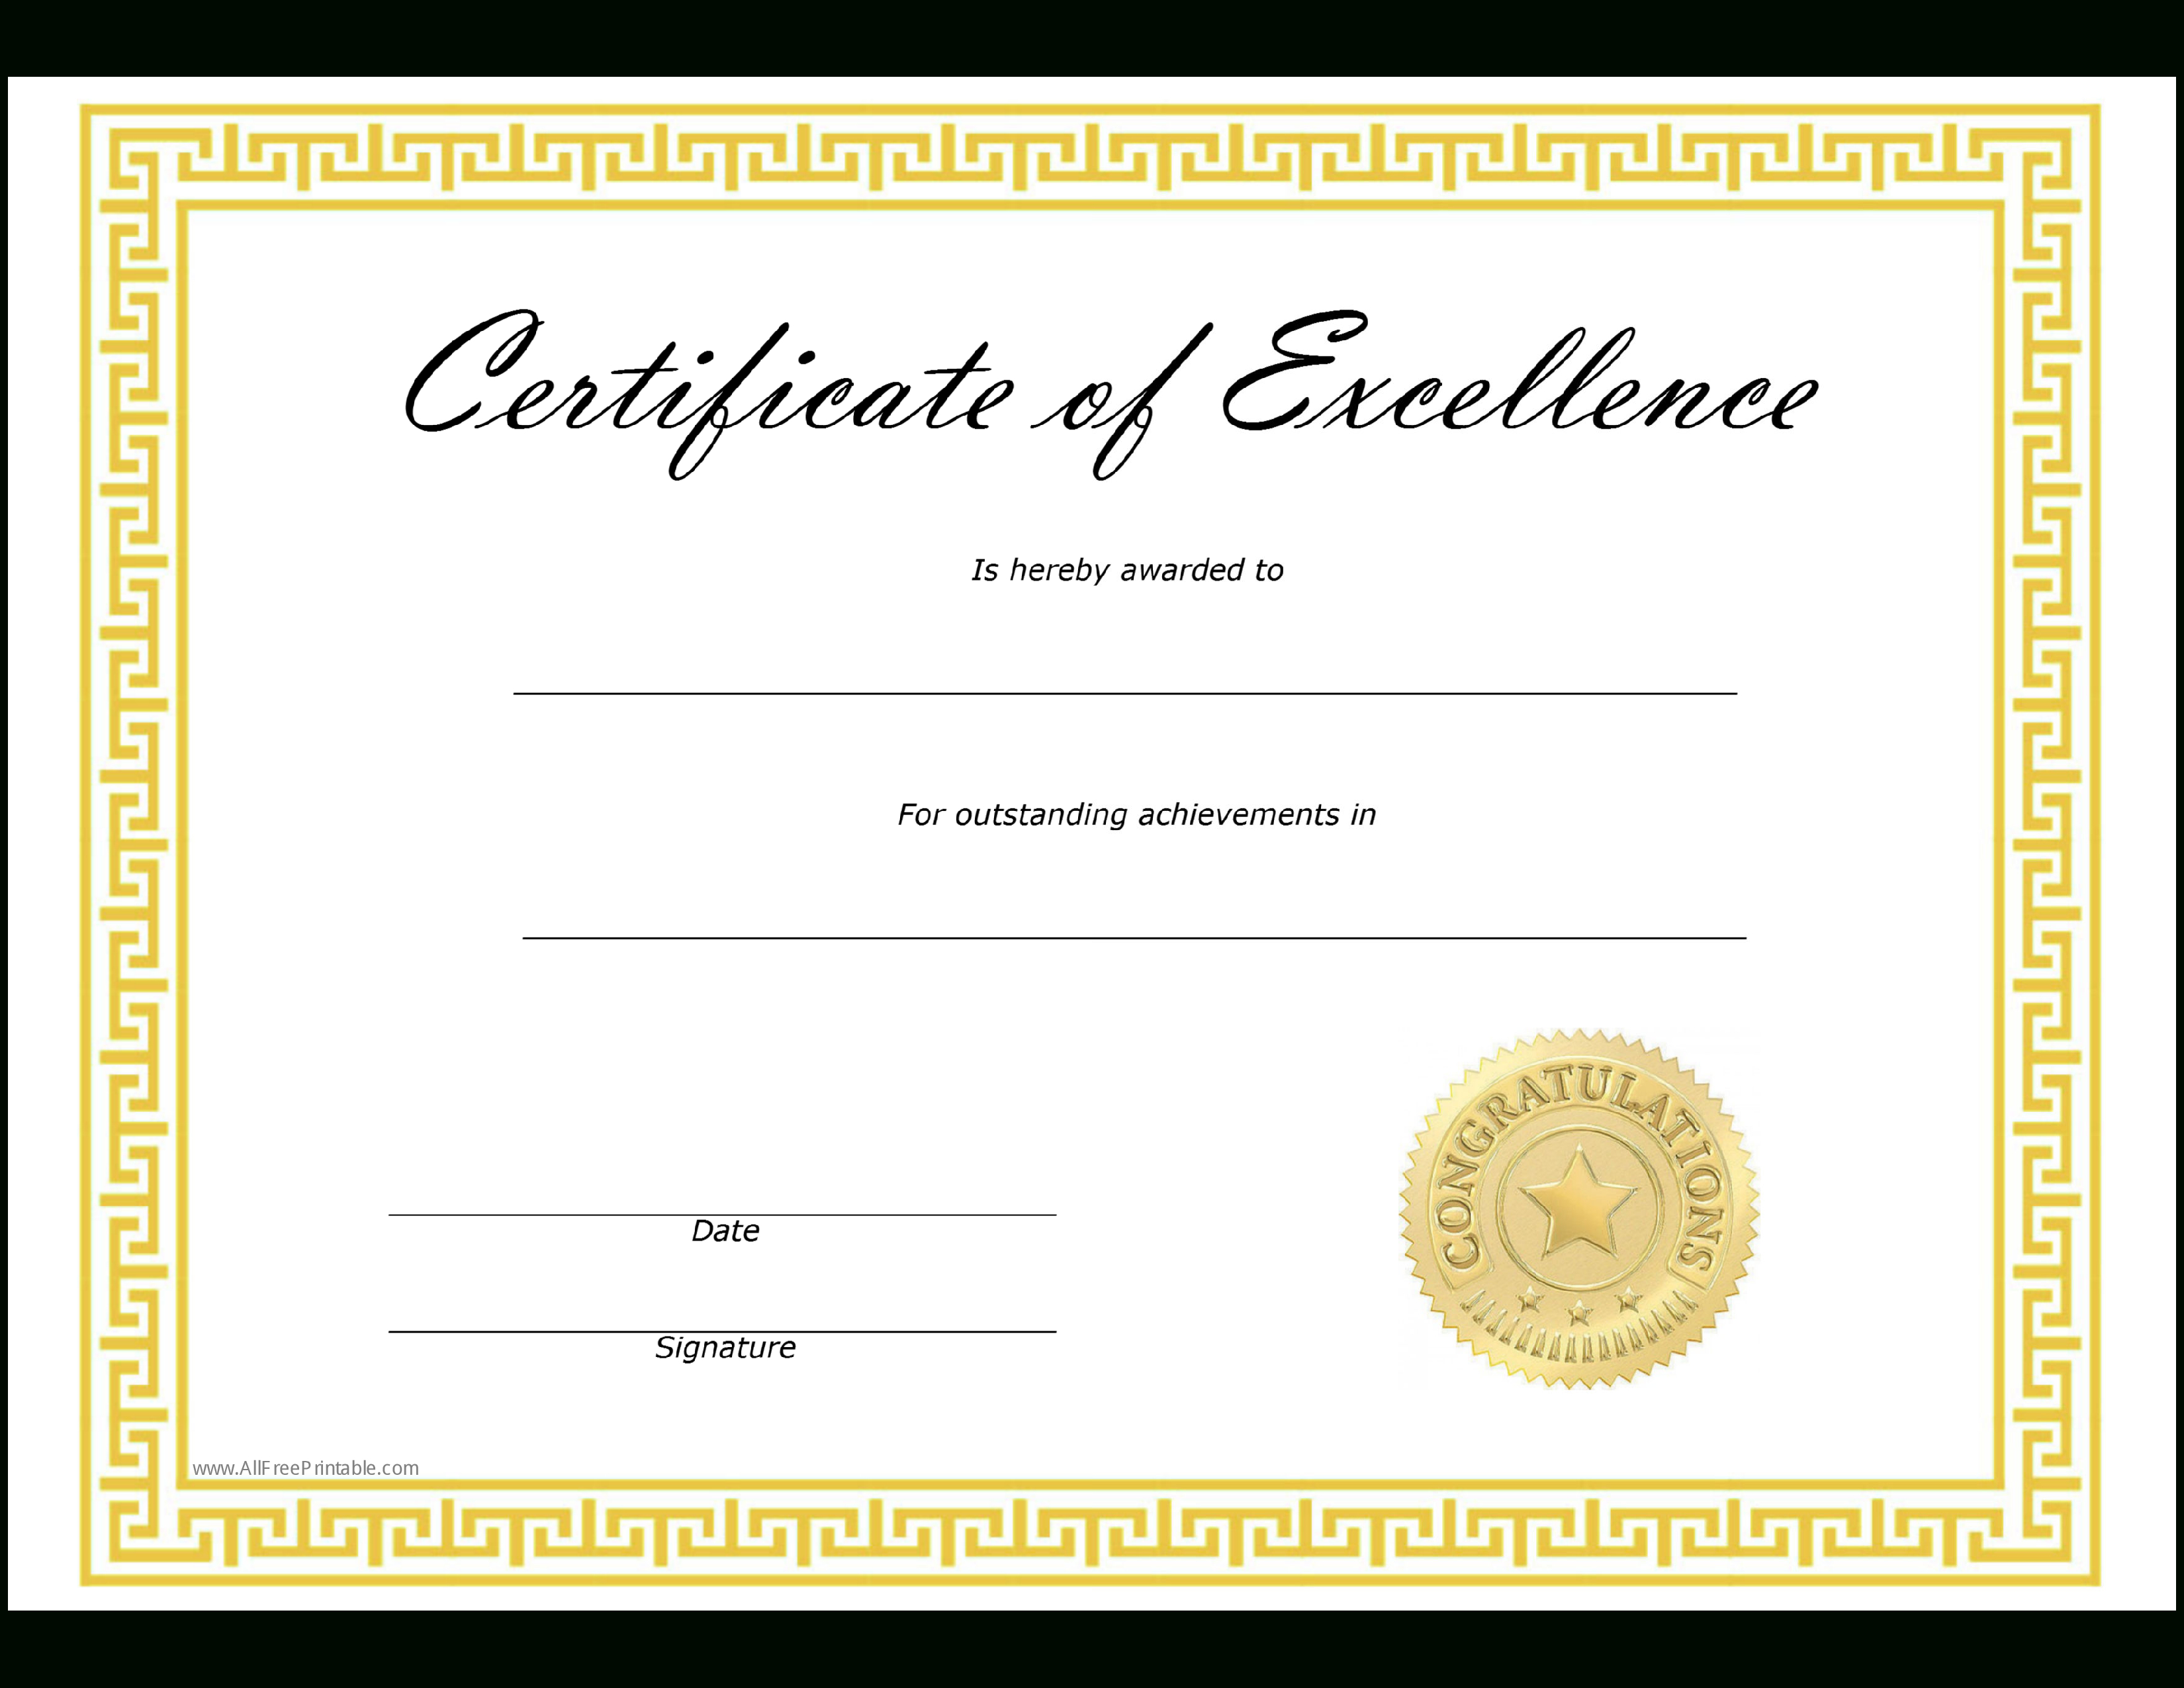 Certificate Of Excellence  Templates At Allbusinesstemplates Within Certificate Of Excellence Template Free Download